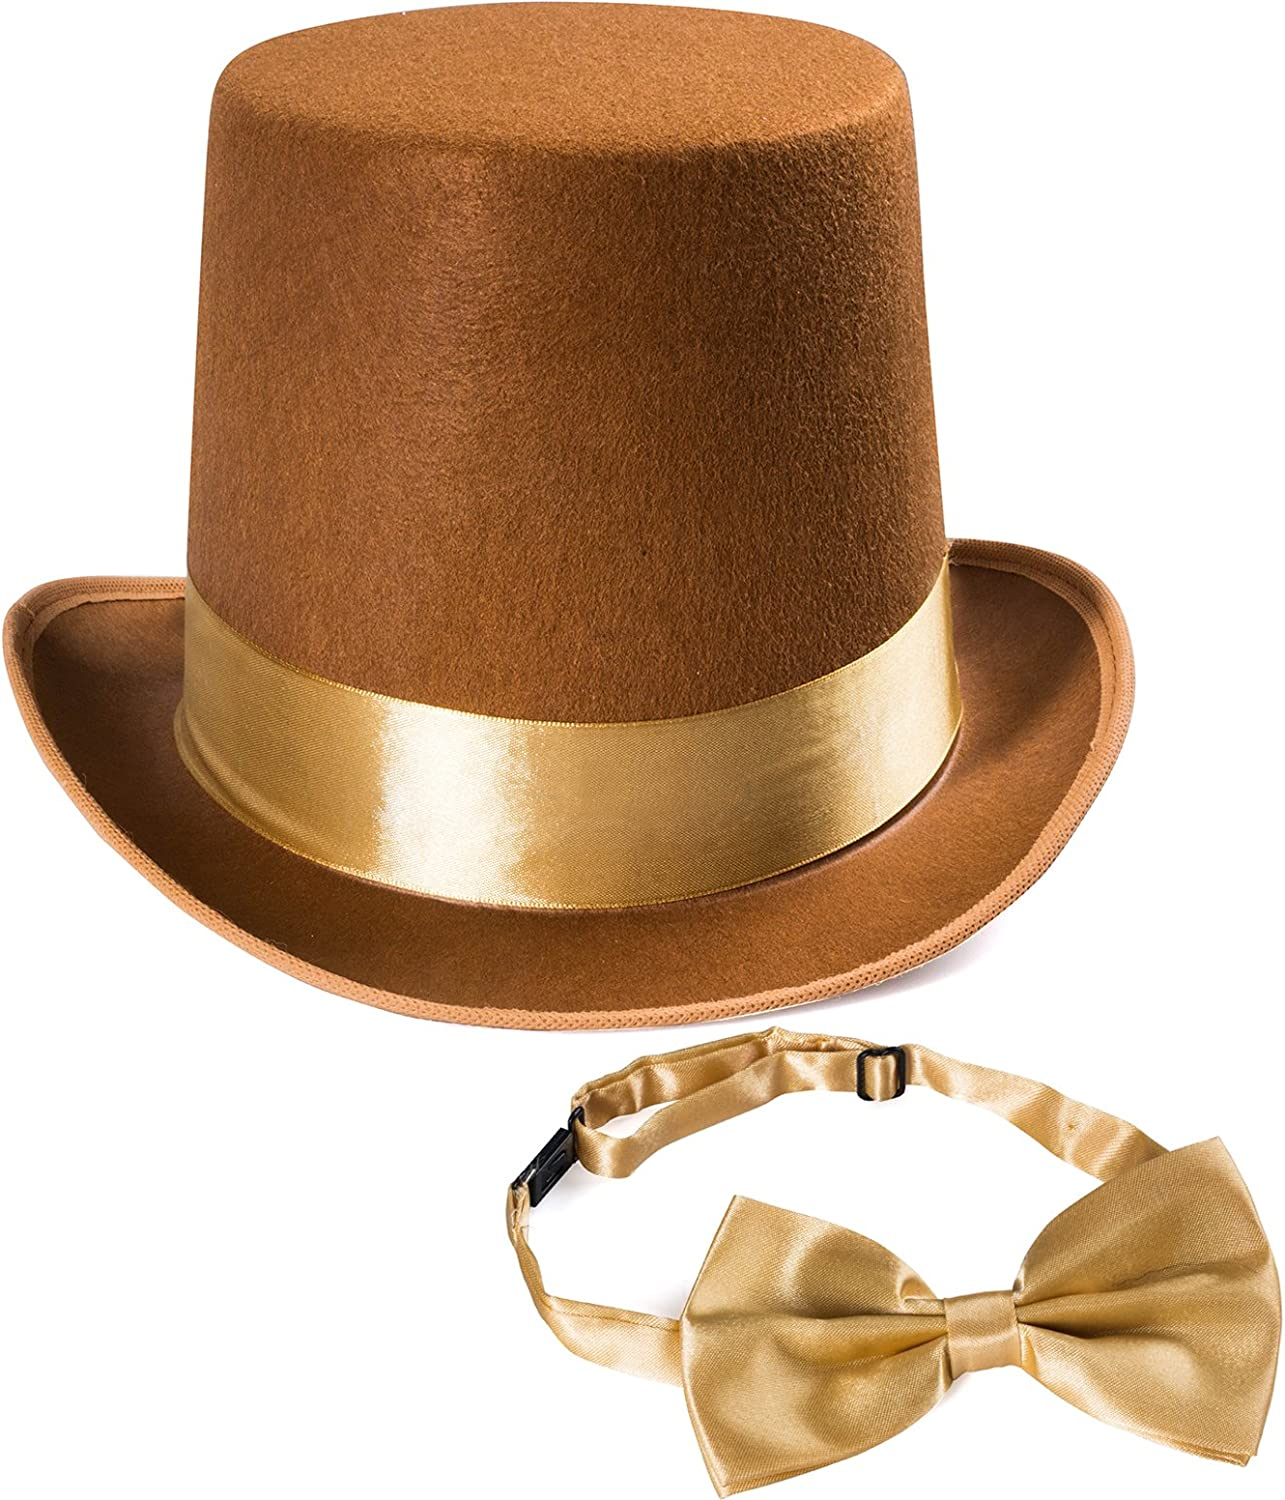 Brown Top Hat Bow Limited time cheap sale Tie - -Burning Costume Steampunk Man Ranking TOP7